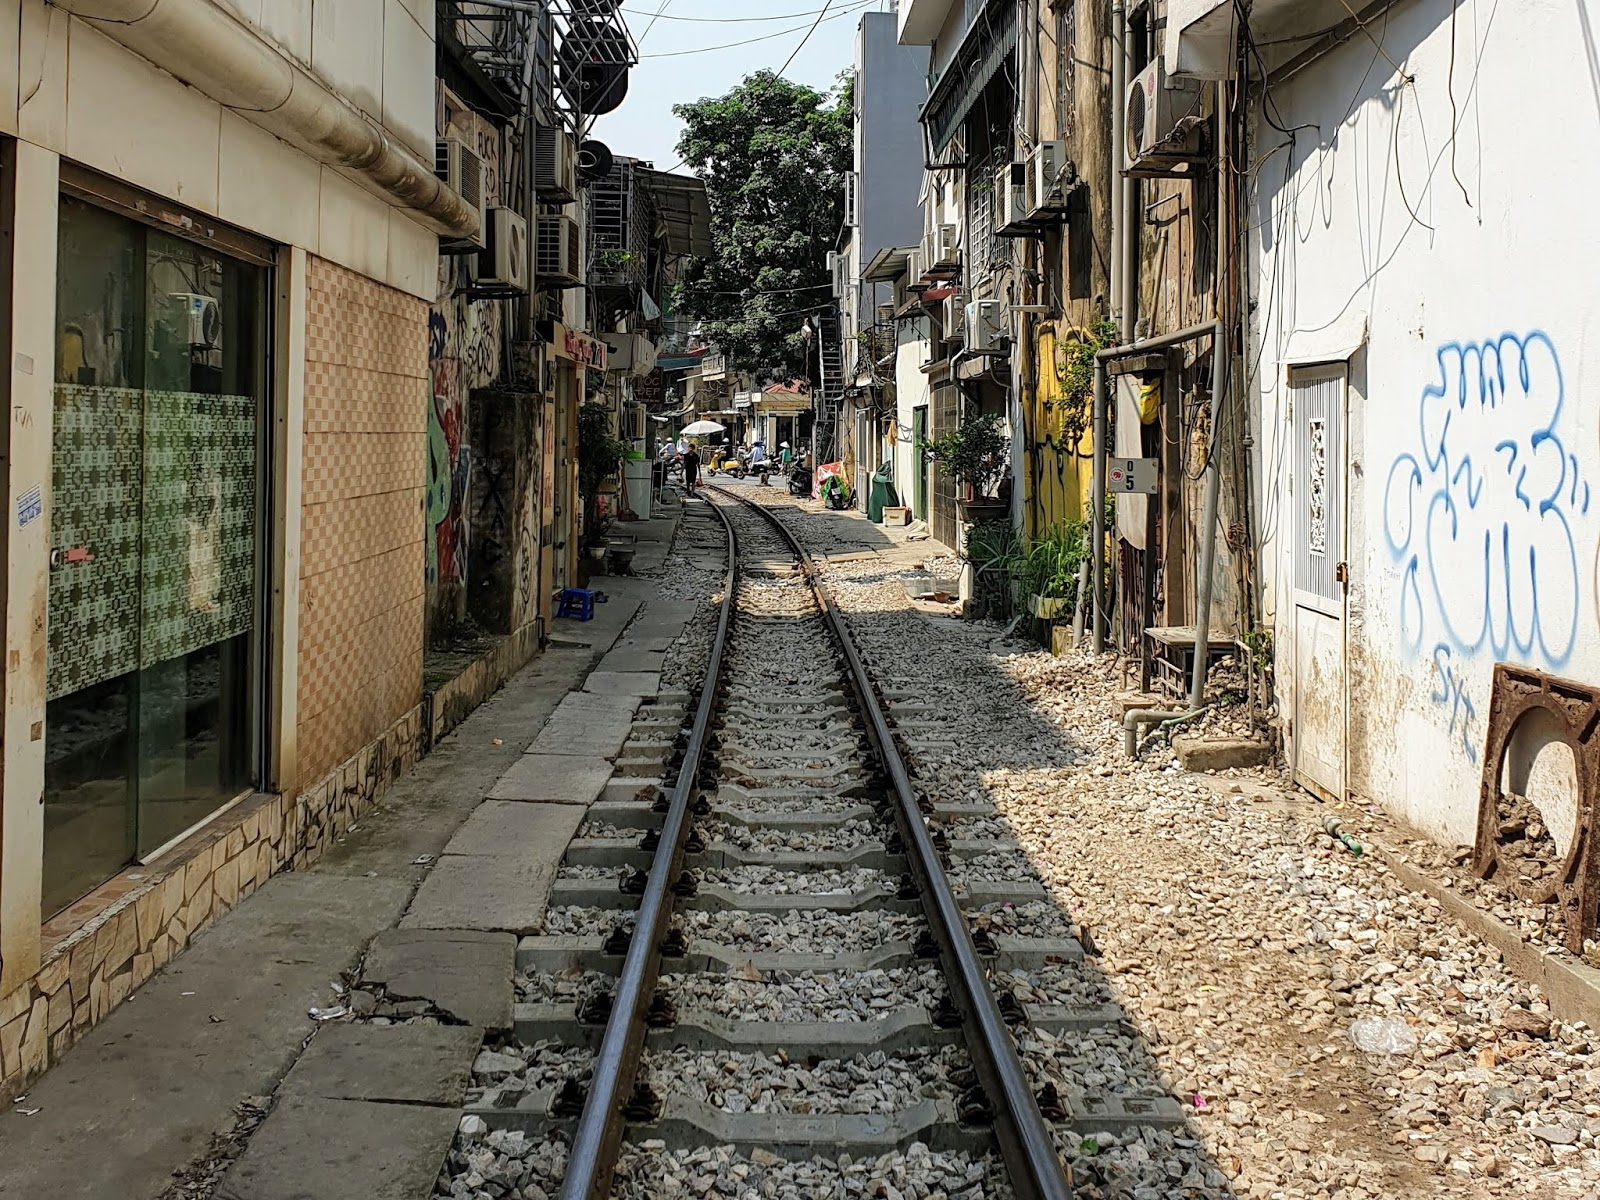 Vietnam: The sleeper train, and a day in Hue